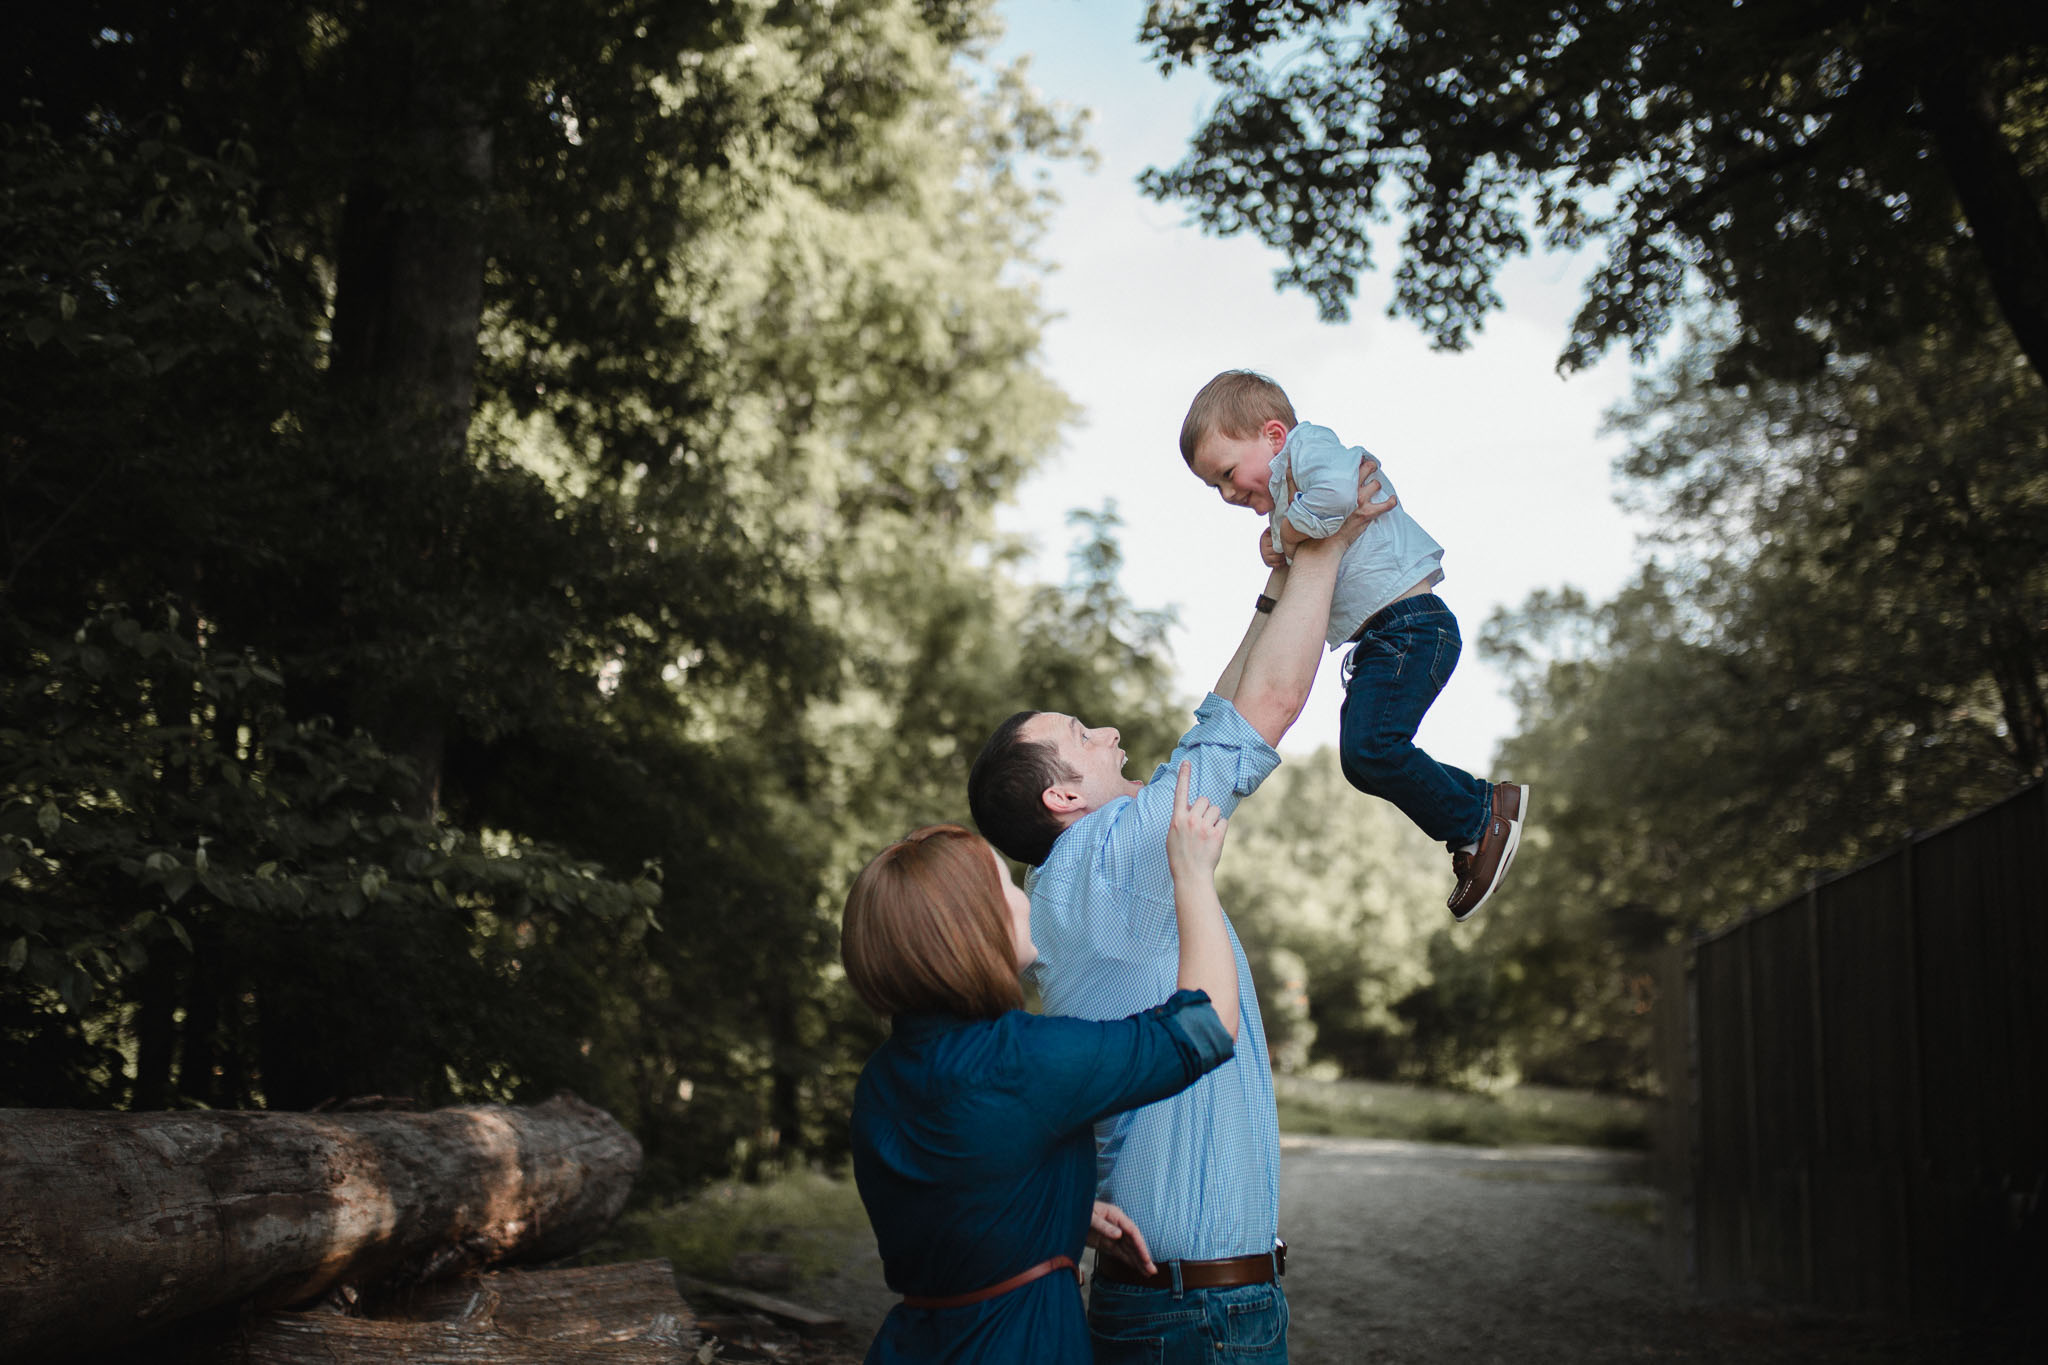 Dad lifts his son in the air while mom makes her son giggle at Cabell's Mill in Chantilly, Virginia